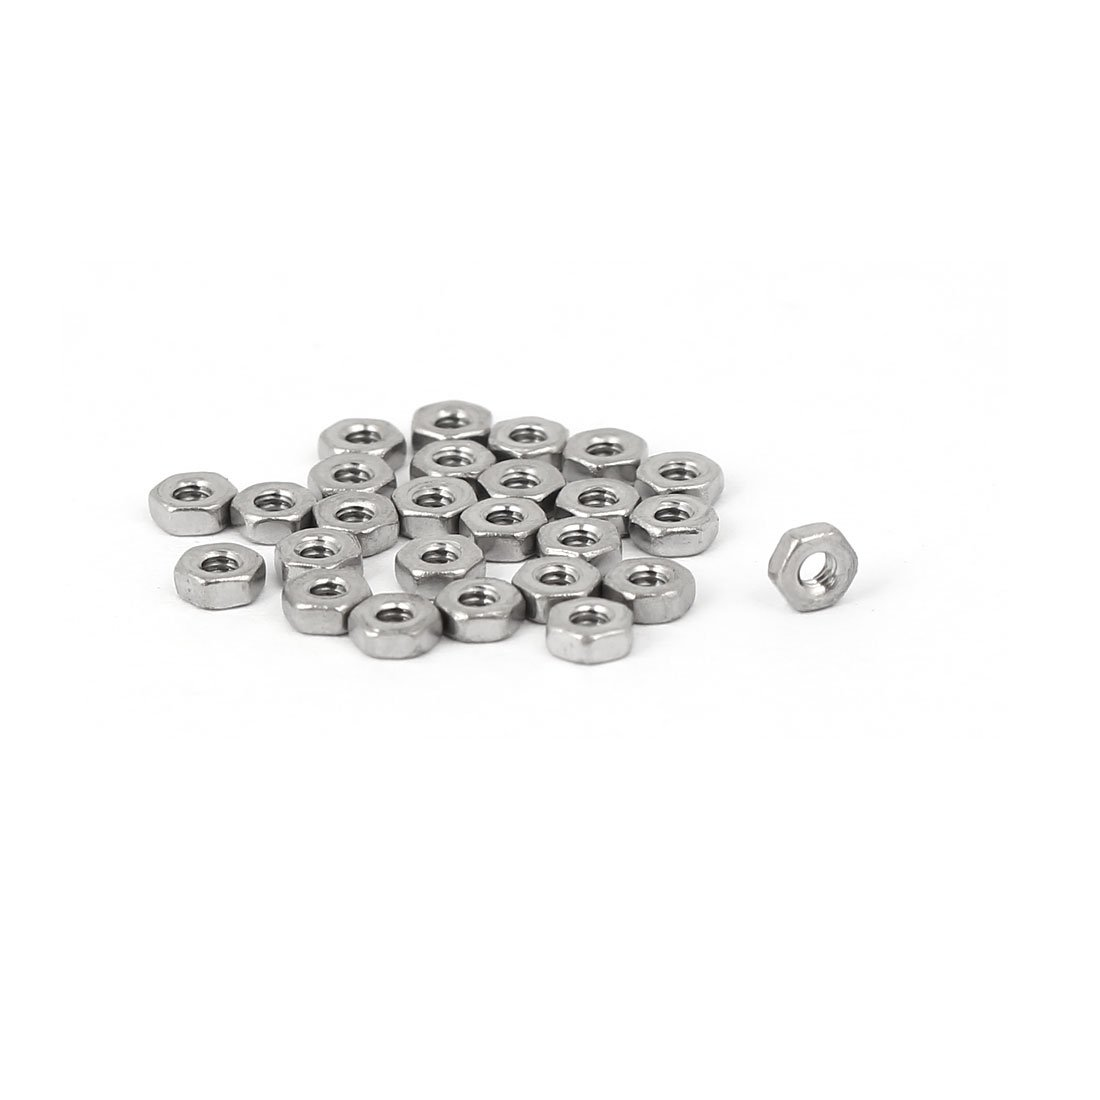 uxcell M1.6 Metric 304 Stainless Steel Hexagon Hex Nut Silver Tone 25pcs a18082200ux0386